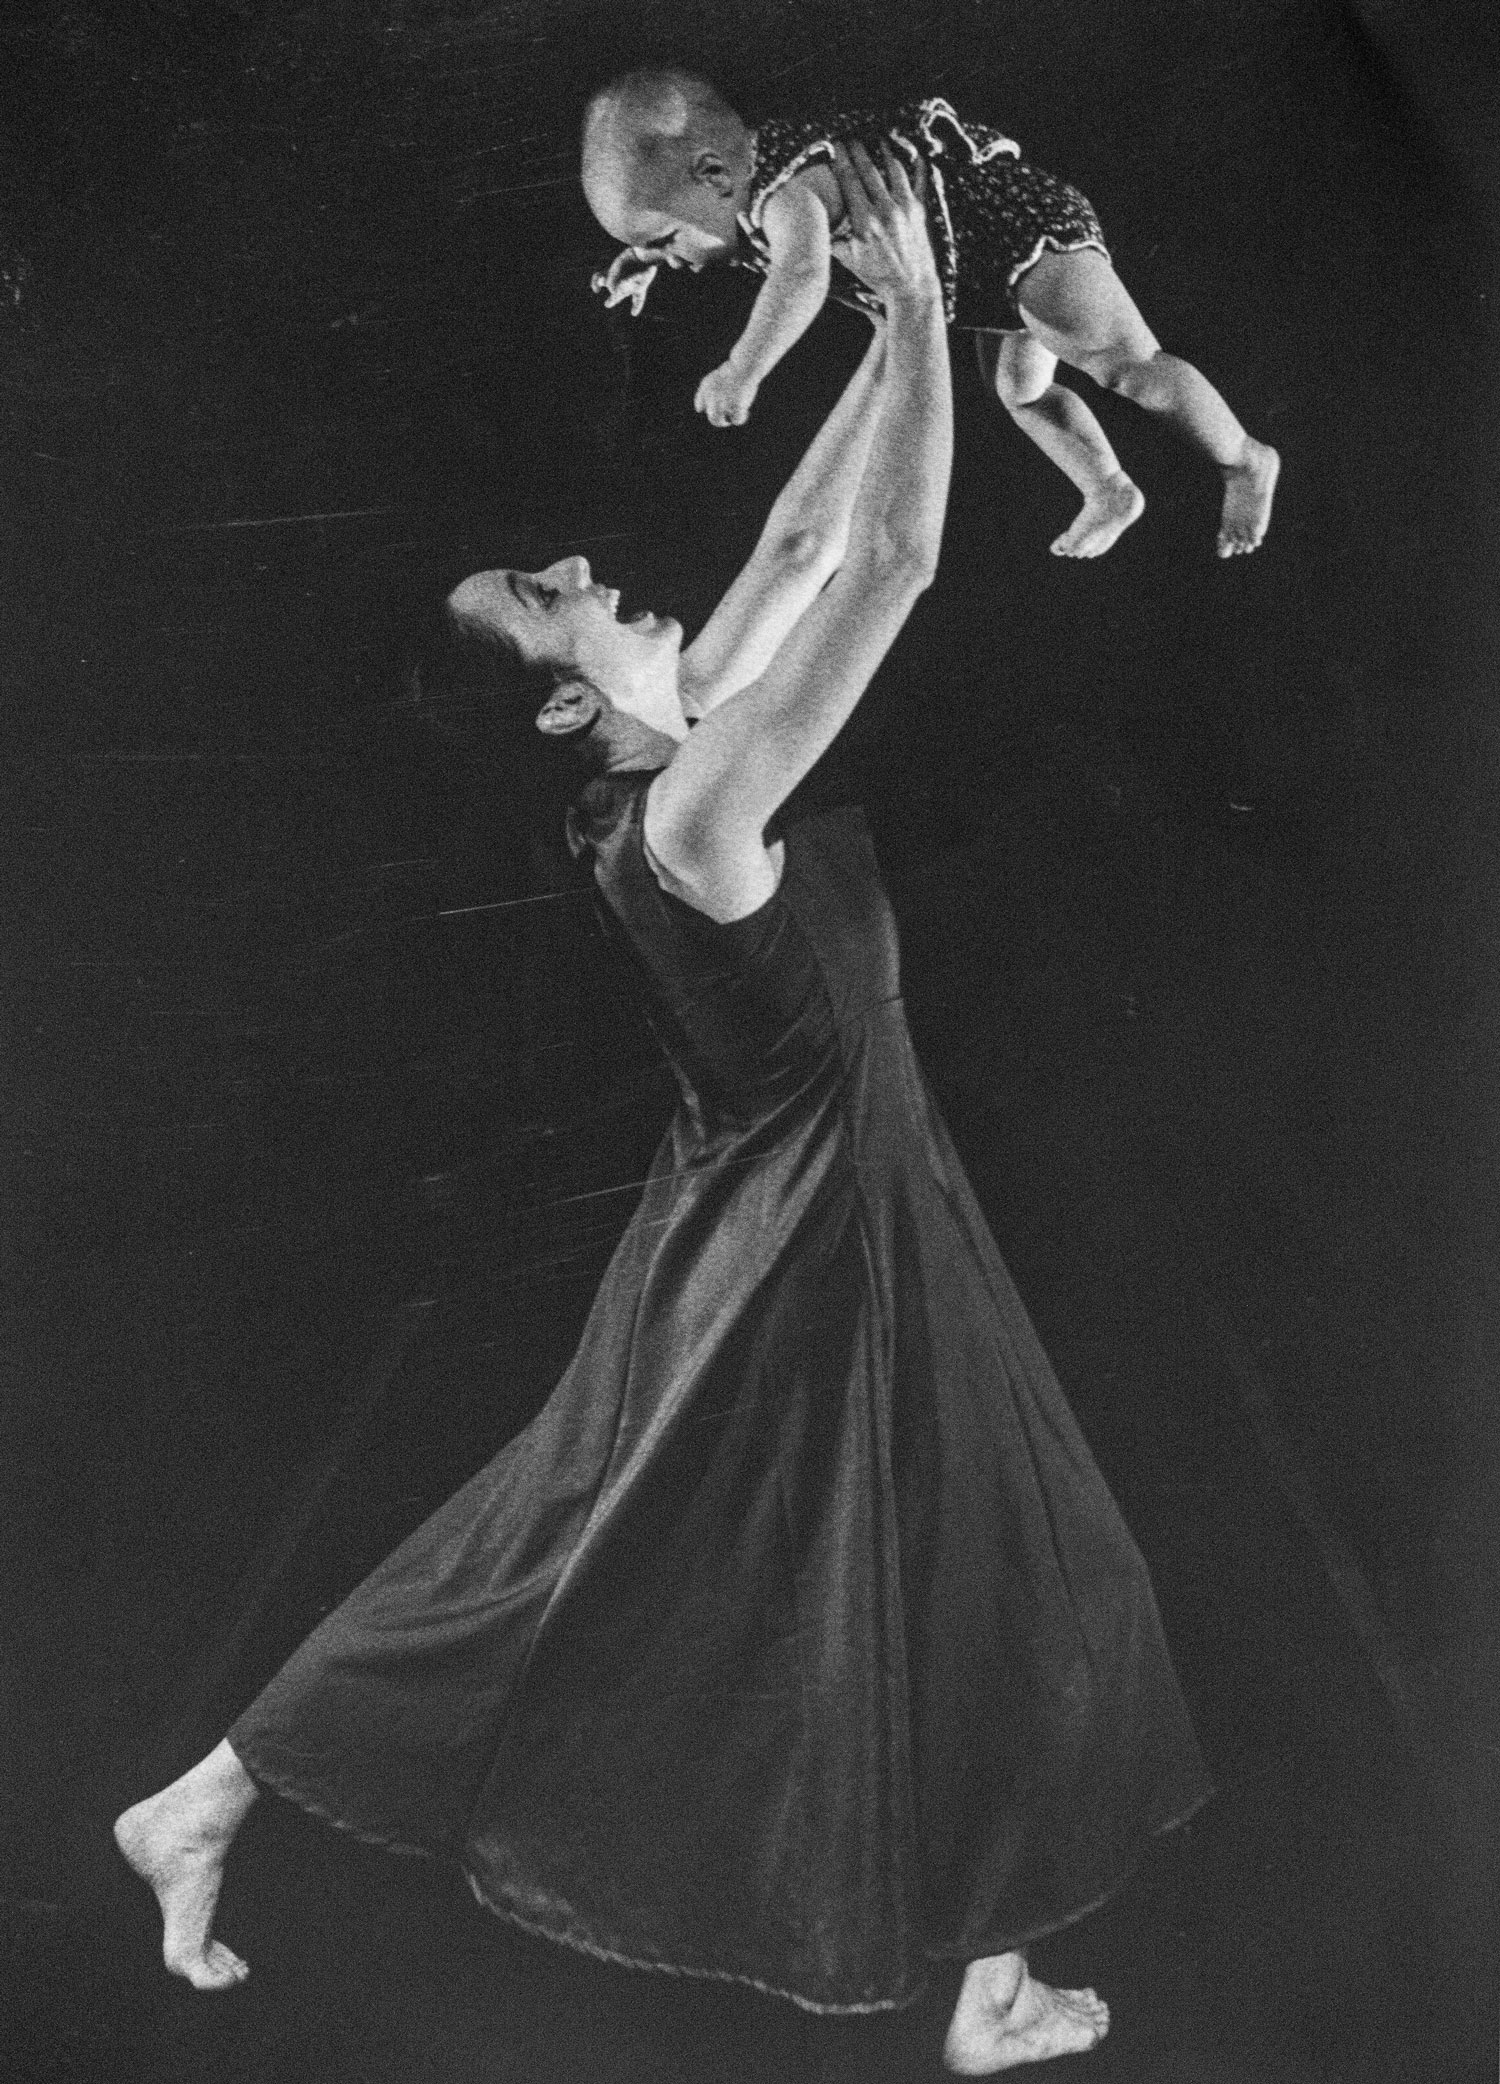 Michele dances with her daughter.